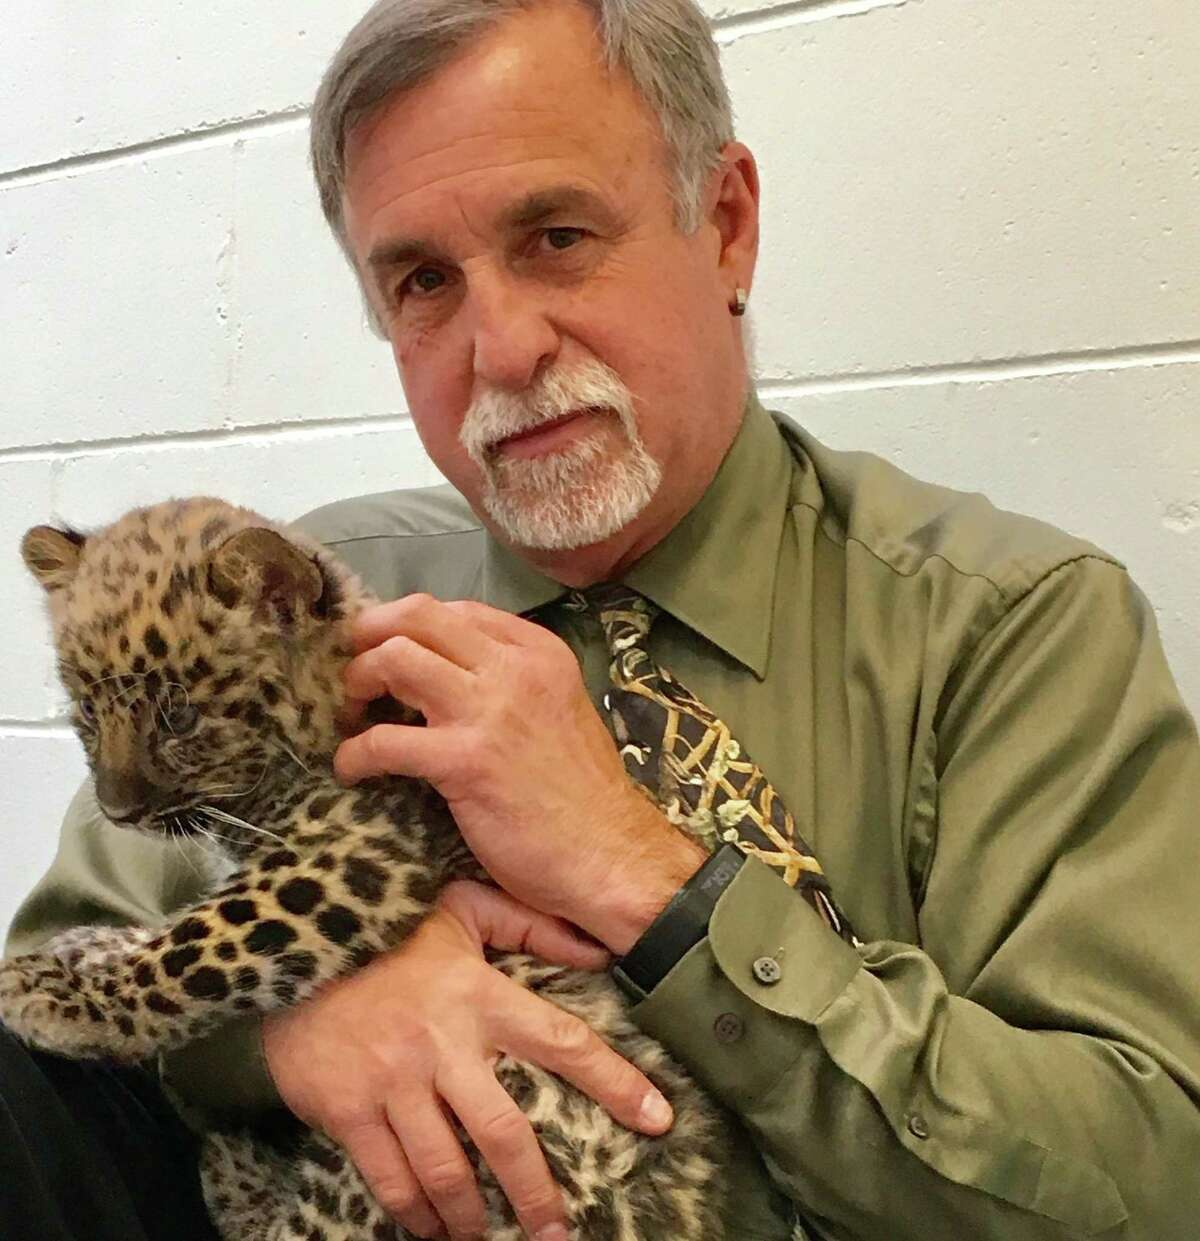 Animal welfare is everyone's first priority at Beardsley Zoo in Bridgeport, says director Gregg Dancho, seen here with Orion.